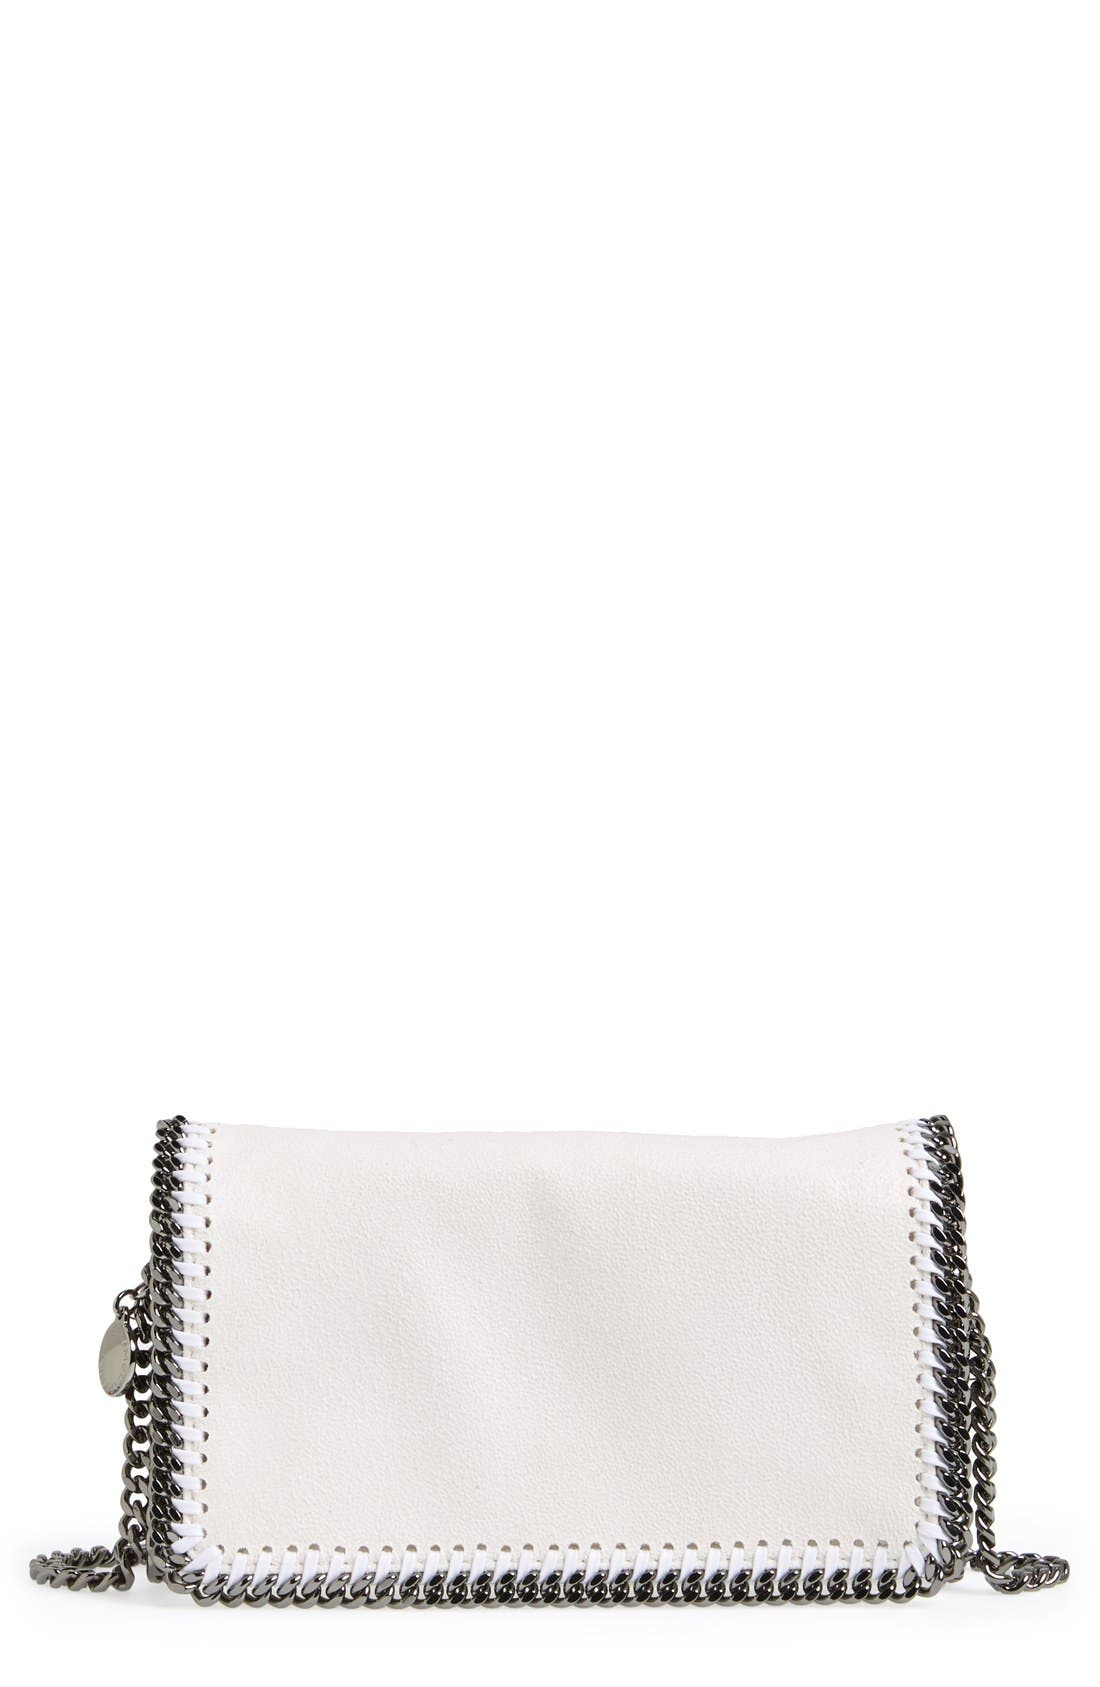 Main Image - Stella McCartney 'Falabella' Shaggy Deer Convertible Crossbody Bag